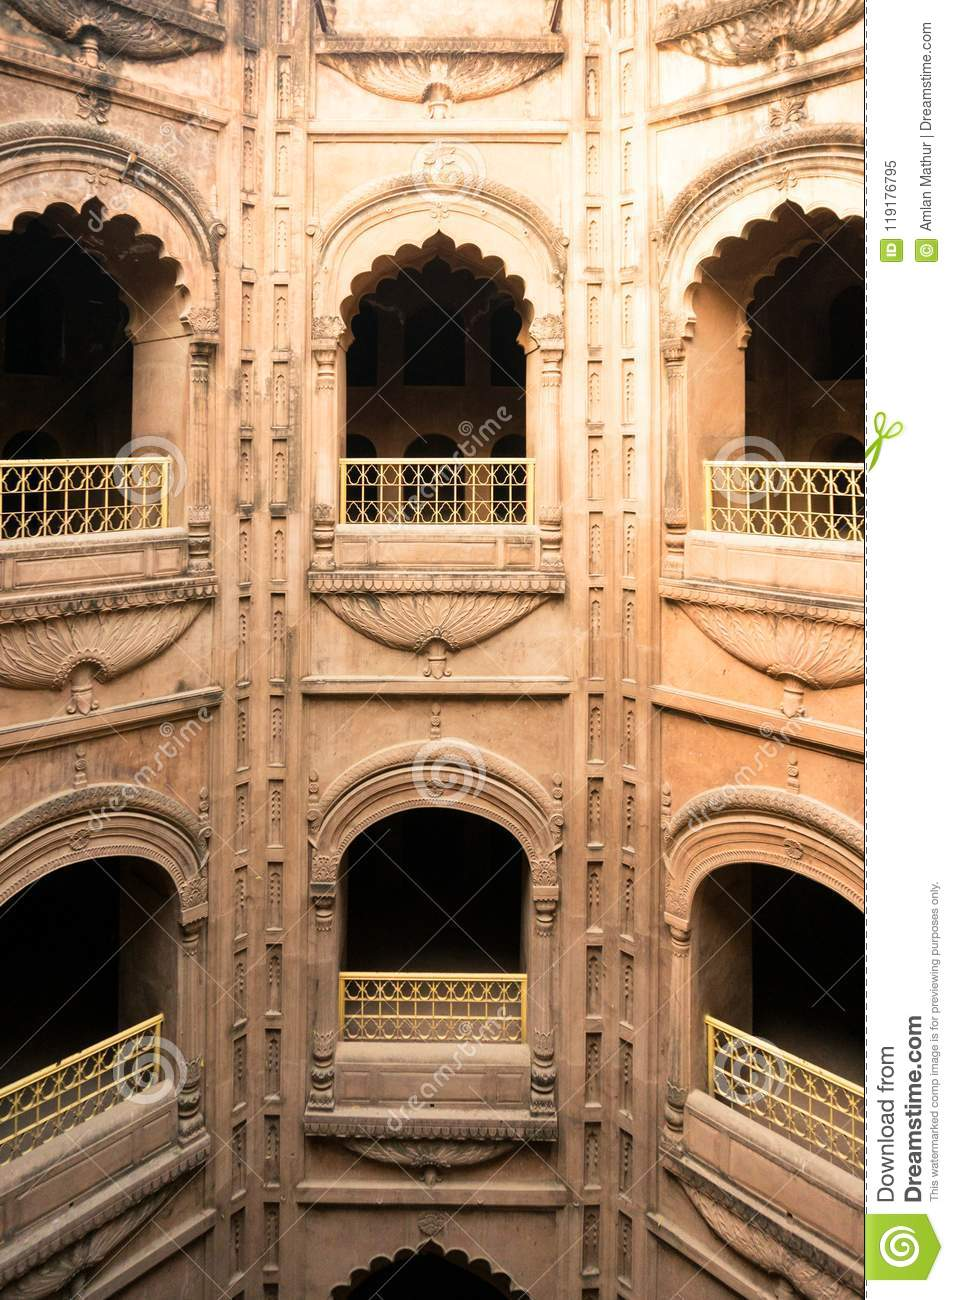 The arched windows at the bouli in bara imambara